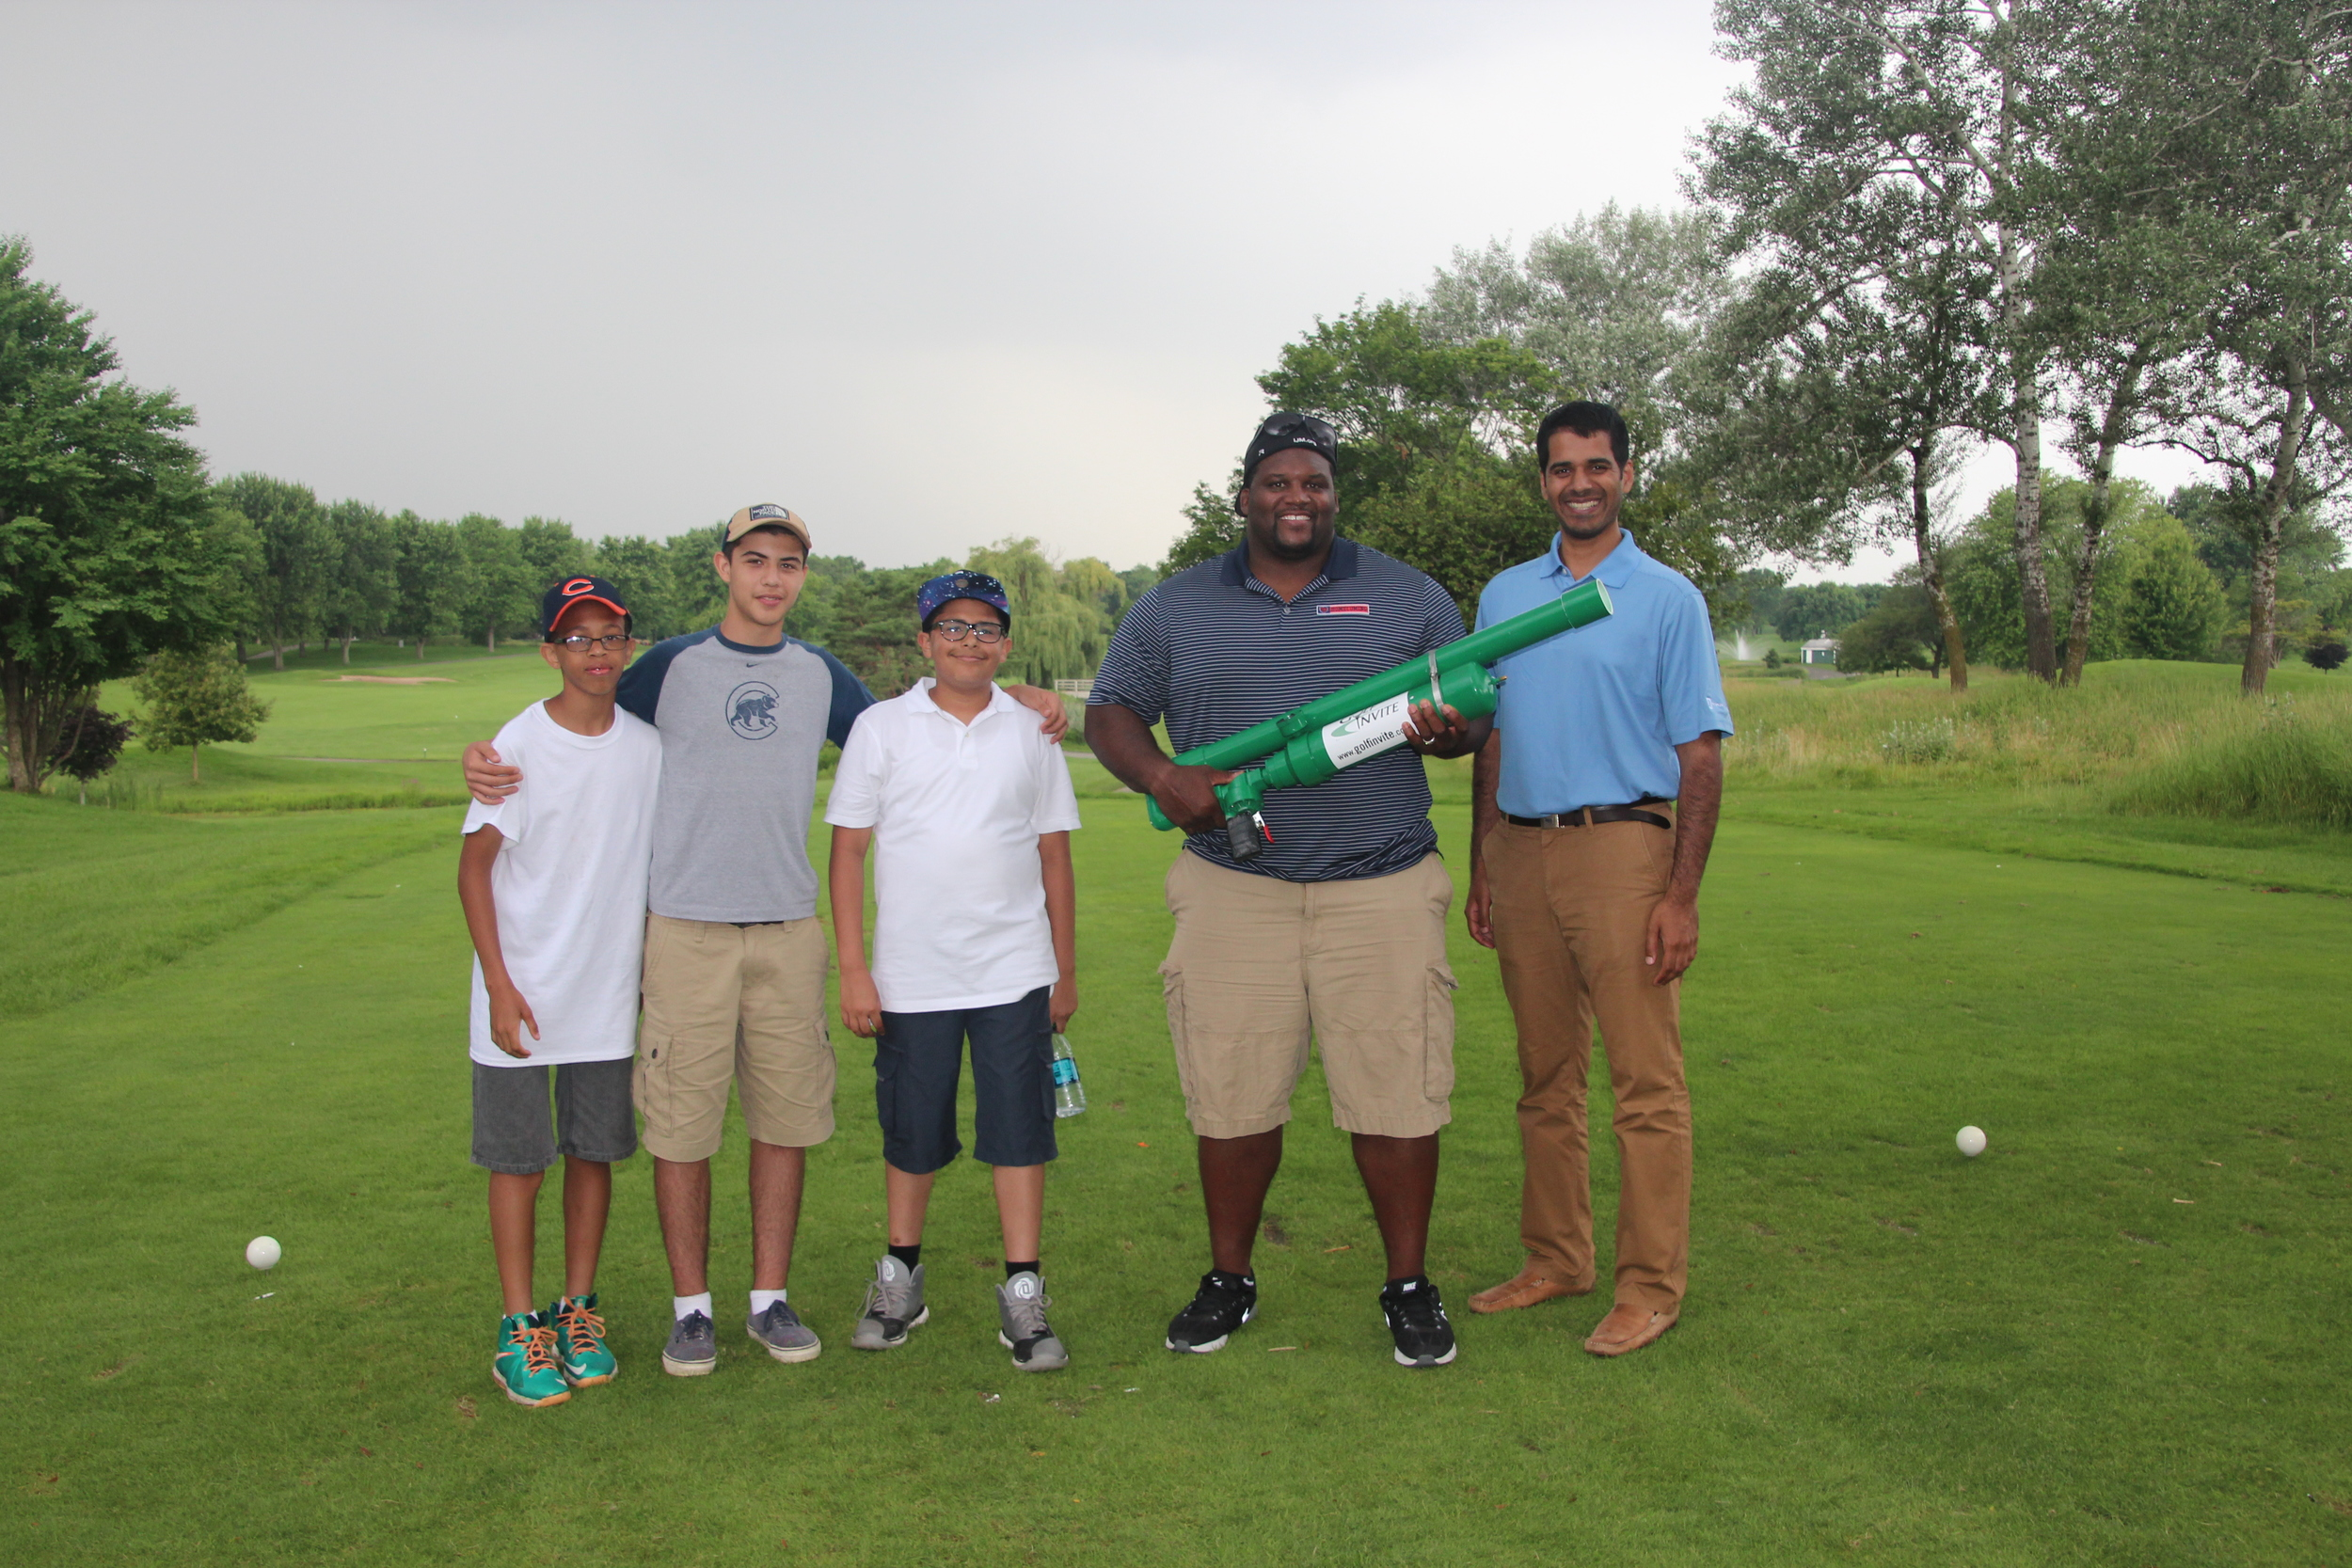 """Anthony Adams, Midtown students and """"the Launcher"""""""